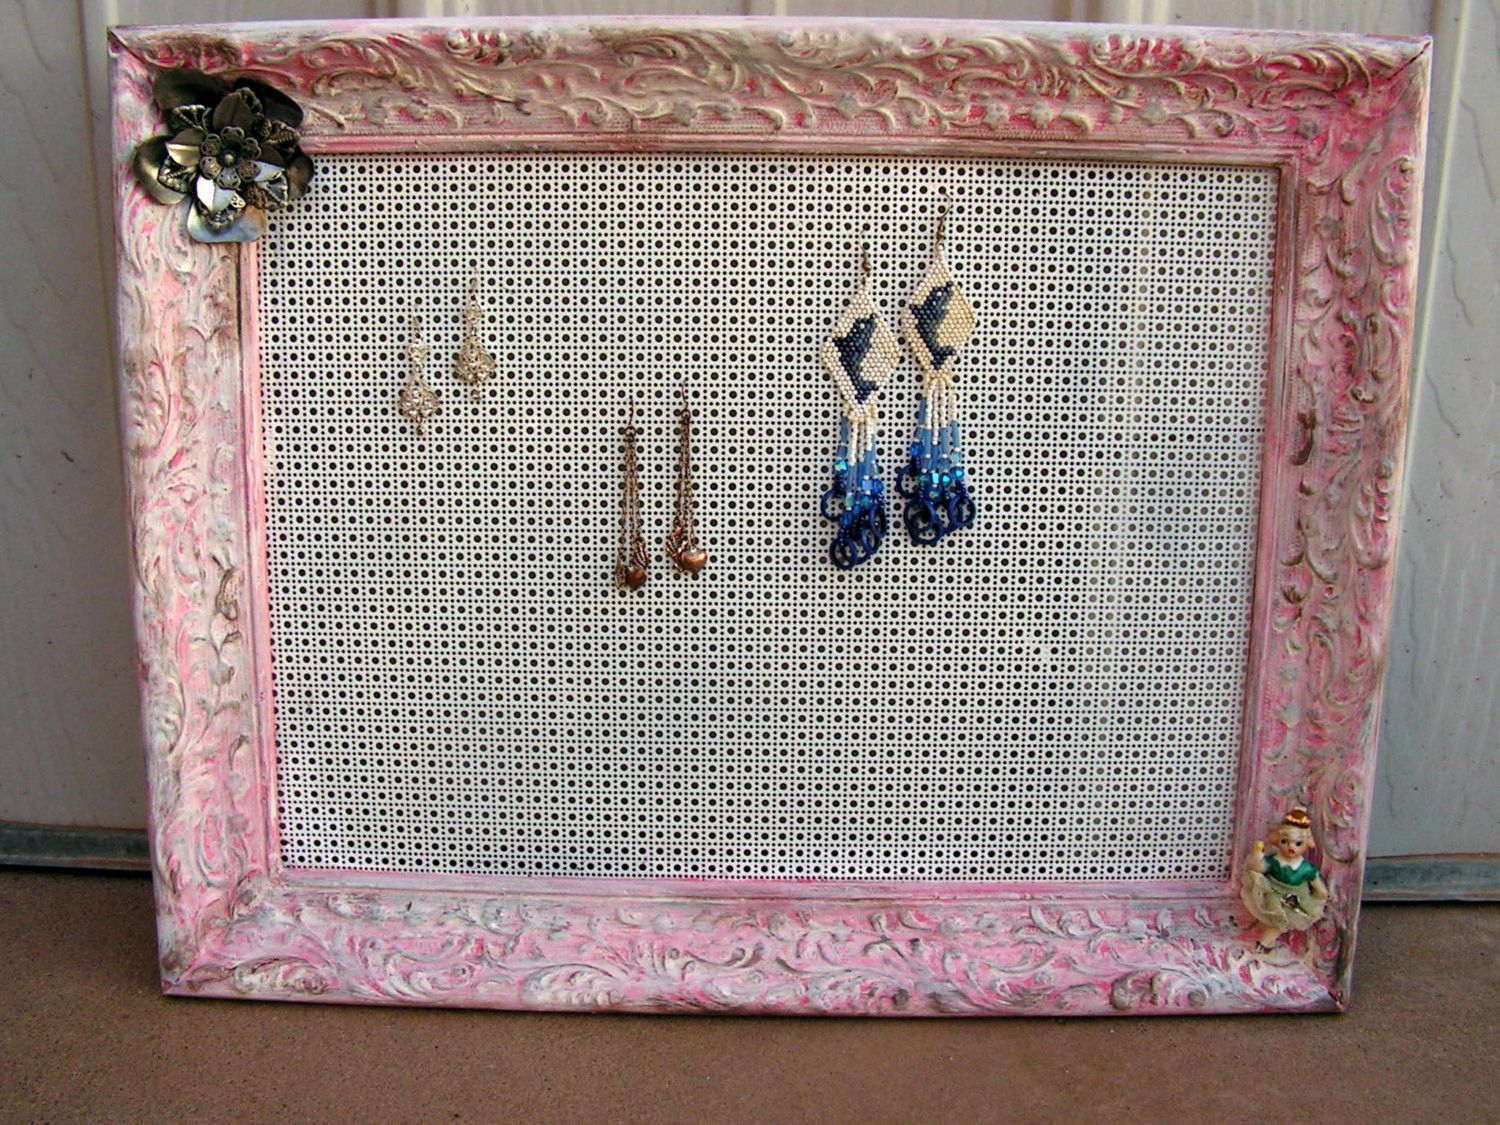 French Country Wooden Picture Frame EARRING Hanger HOLDER Pink White Shabby Chic Wall Hanging Painted Distressed Upcycled Decor